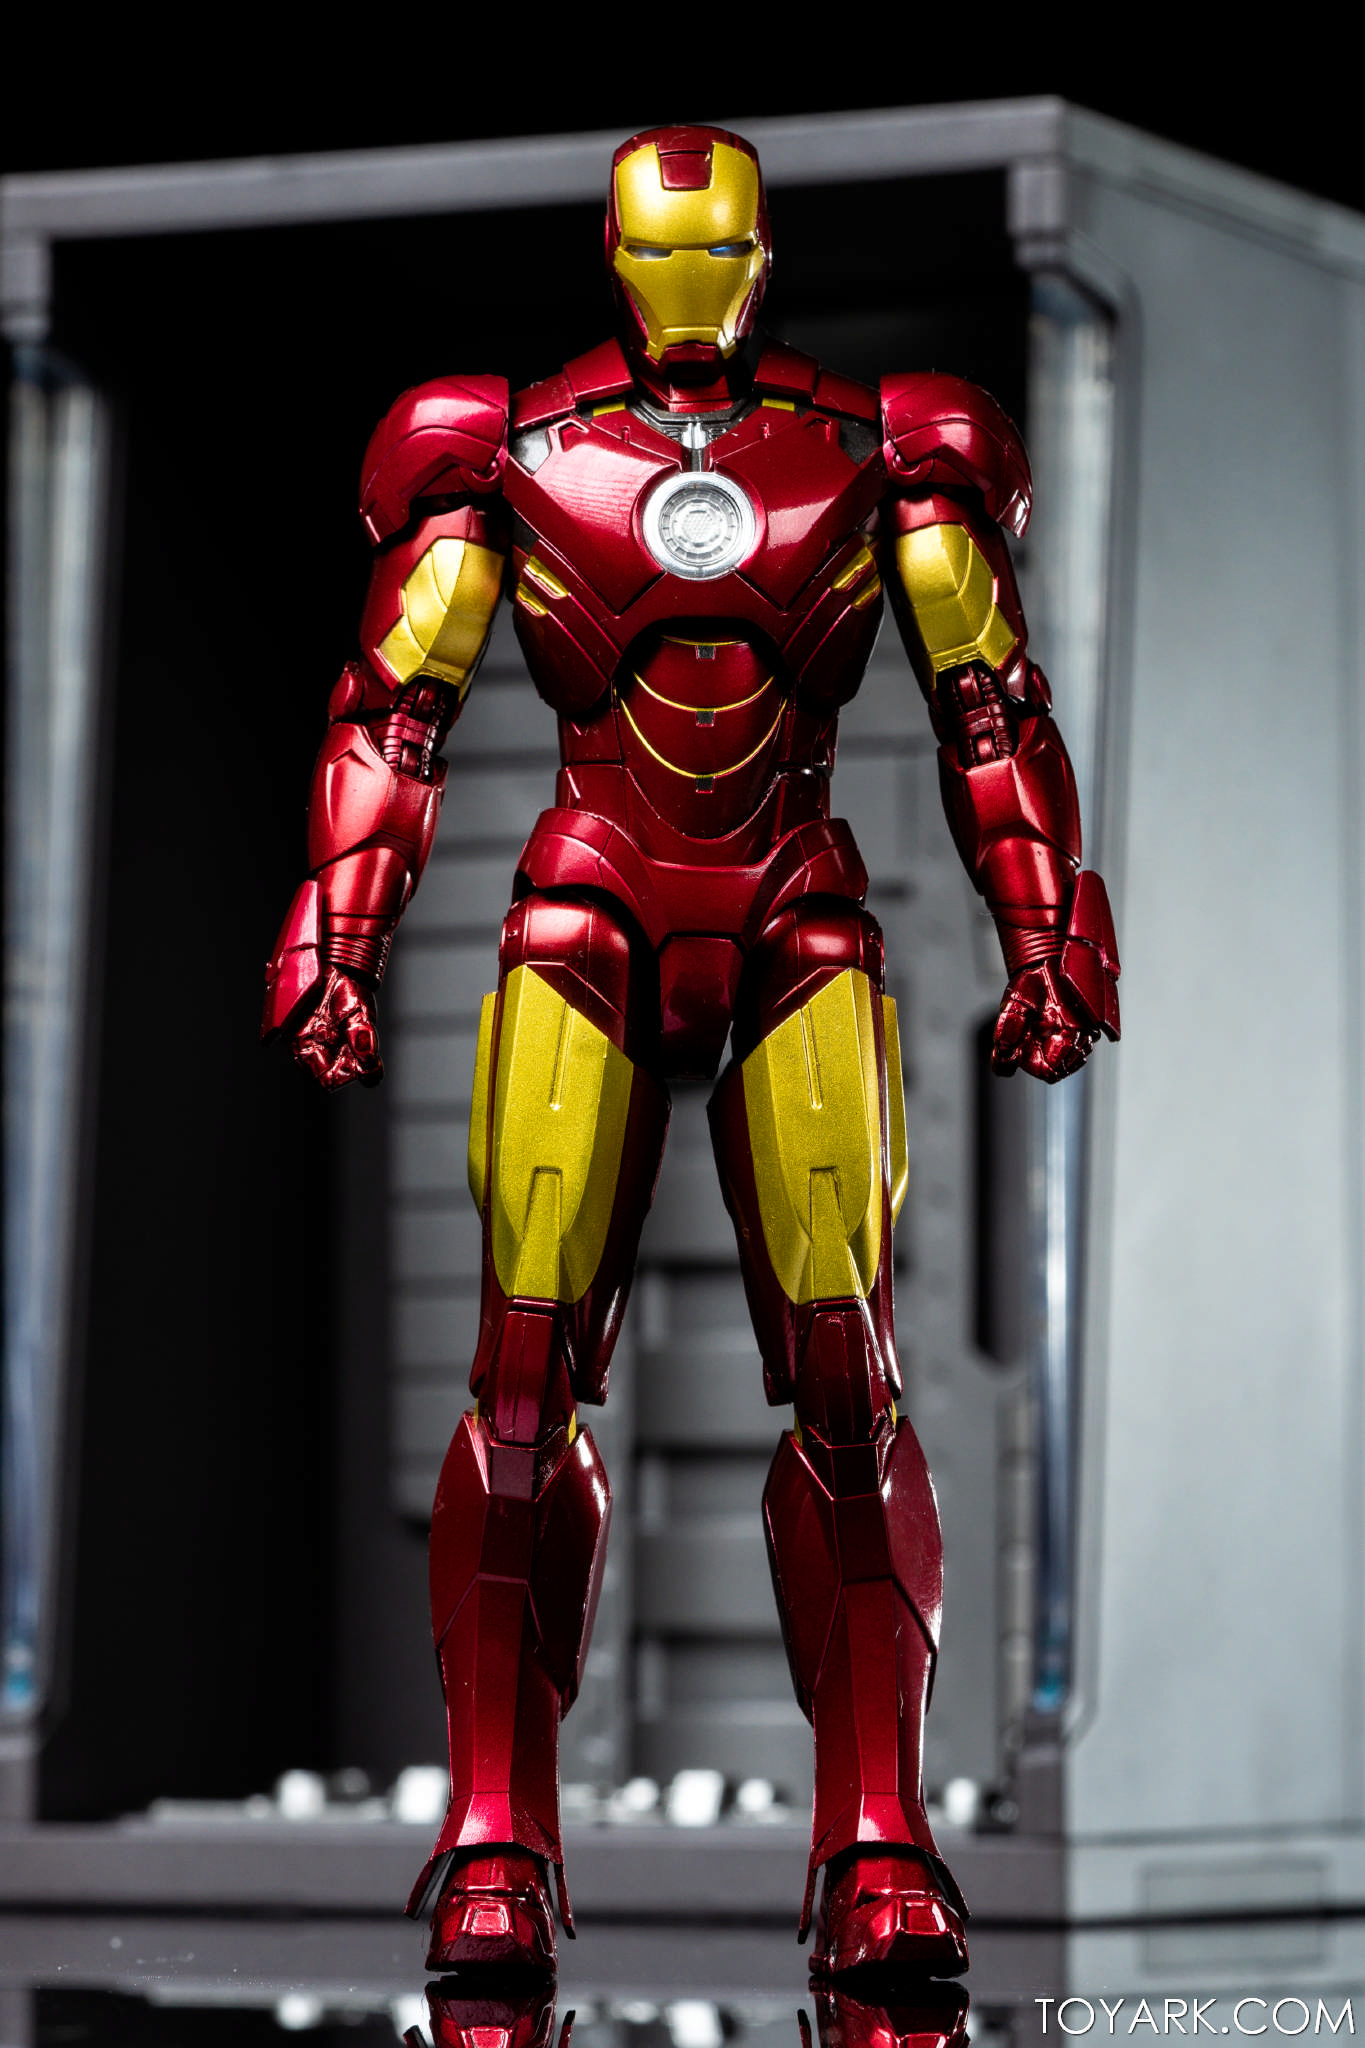 S H  Figuarts Iron Man Mk 4 with Hall of Armor Gallery - The